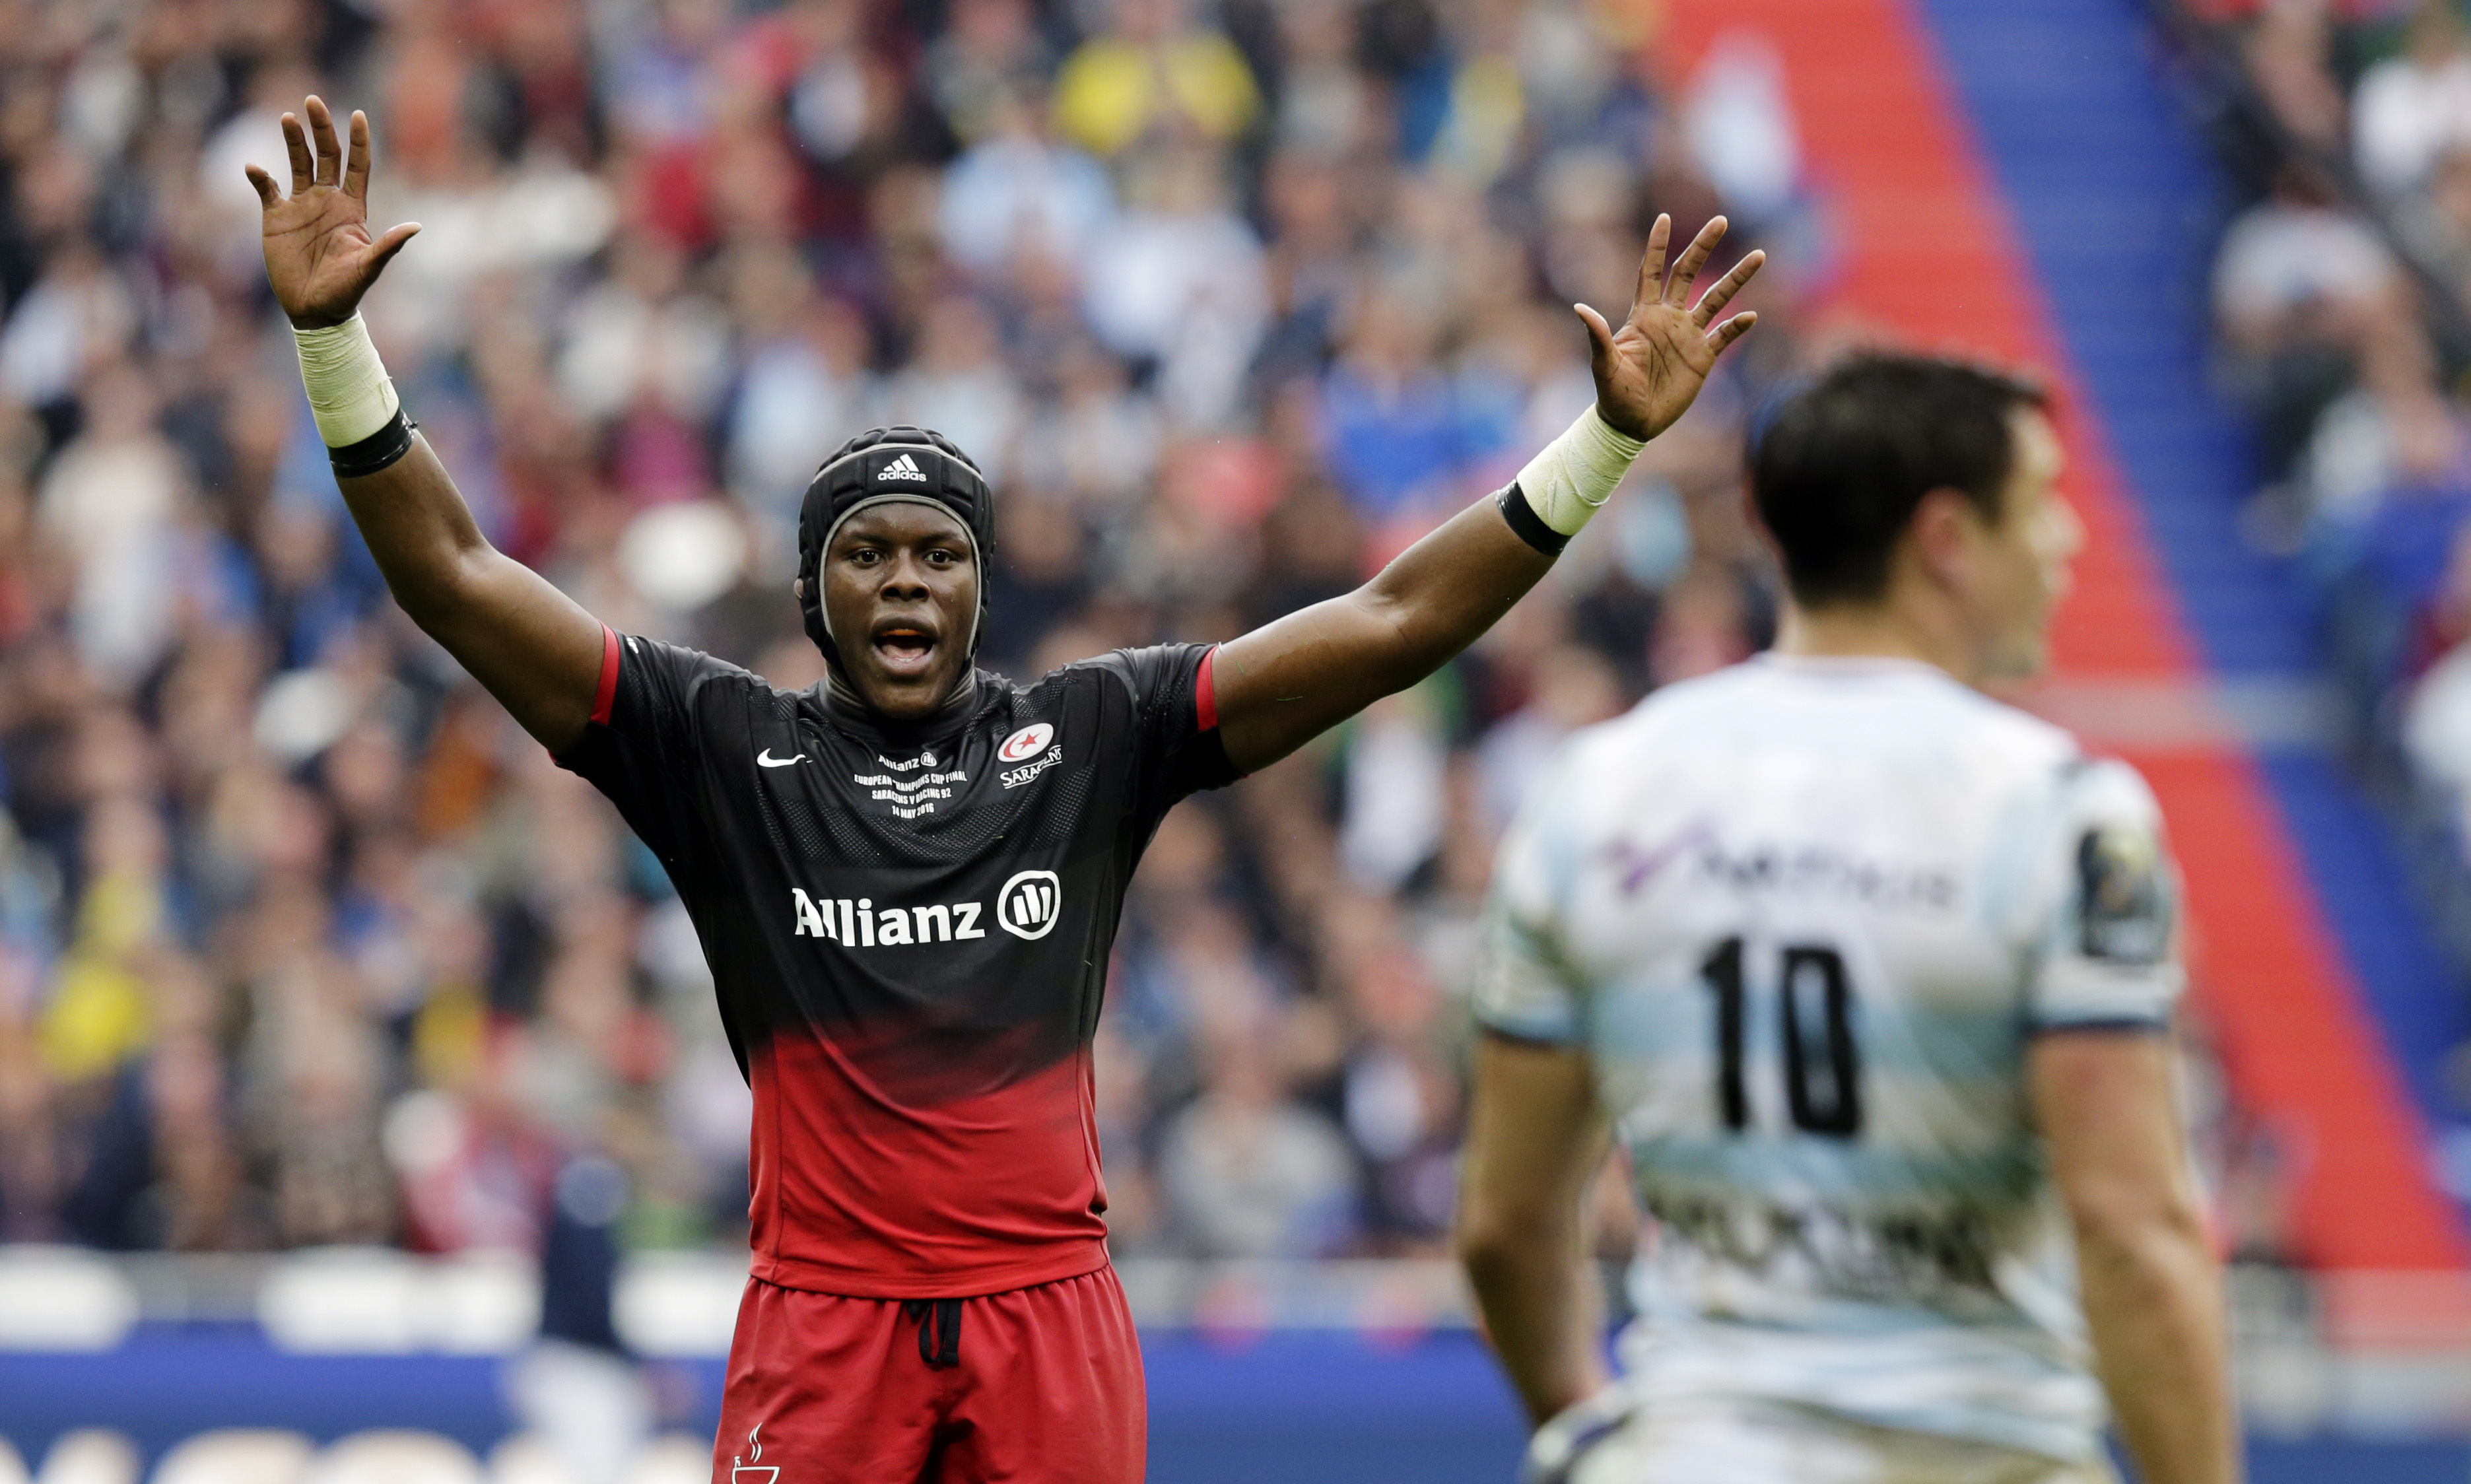 Rugby - Coupes d'Europe - Coupe d'Europe : l'Angleterre bombe le torse